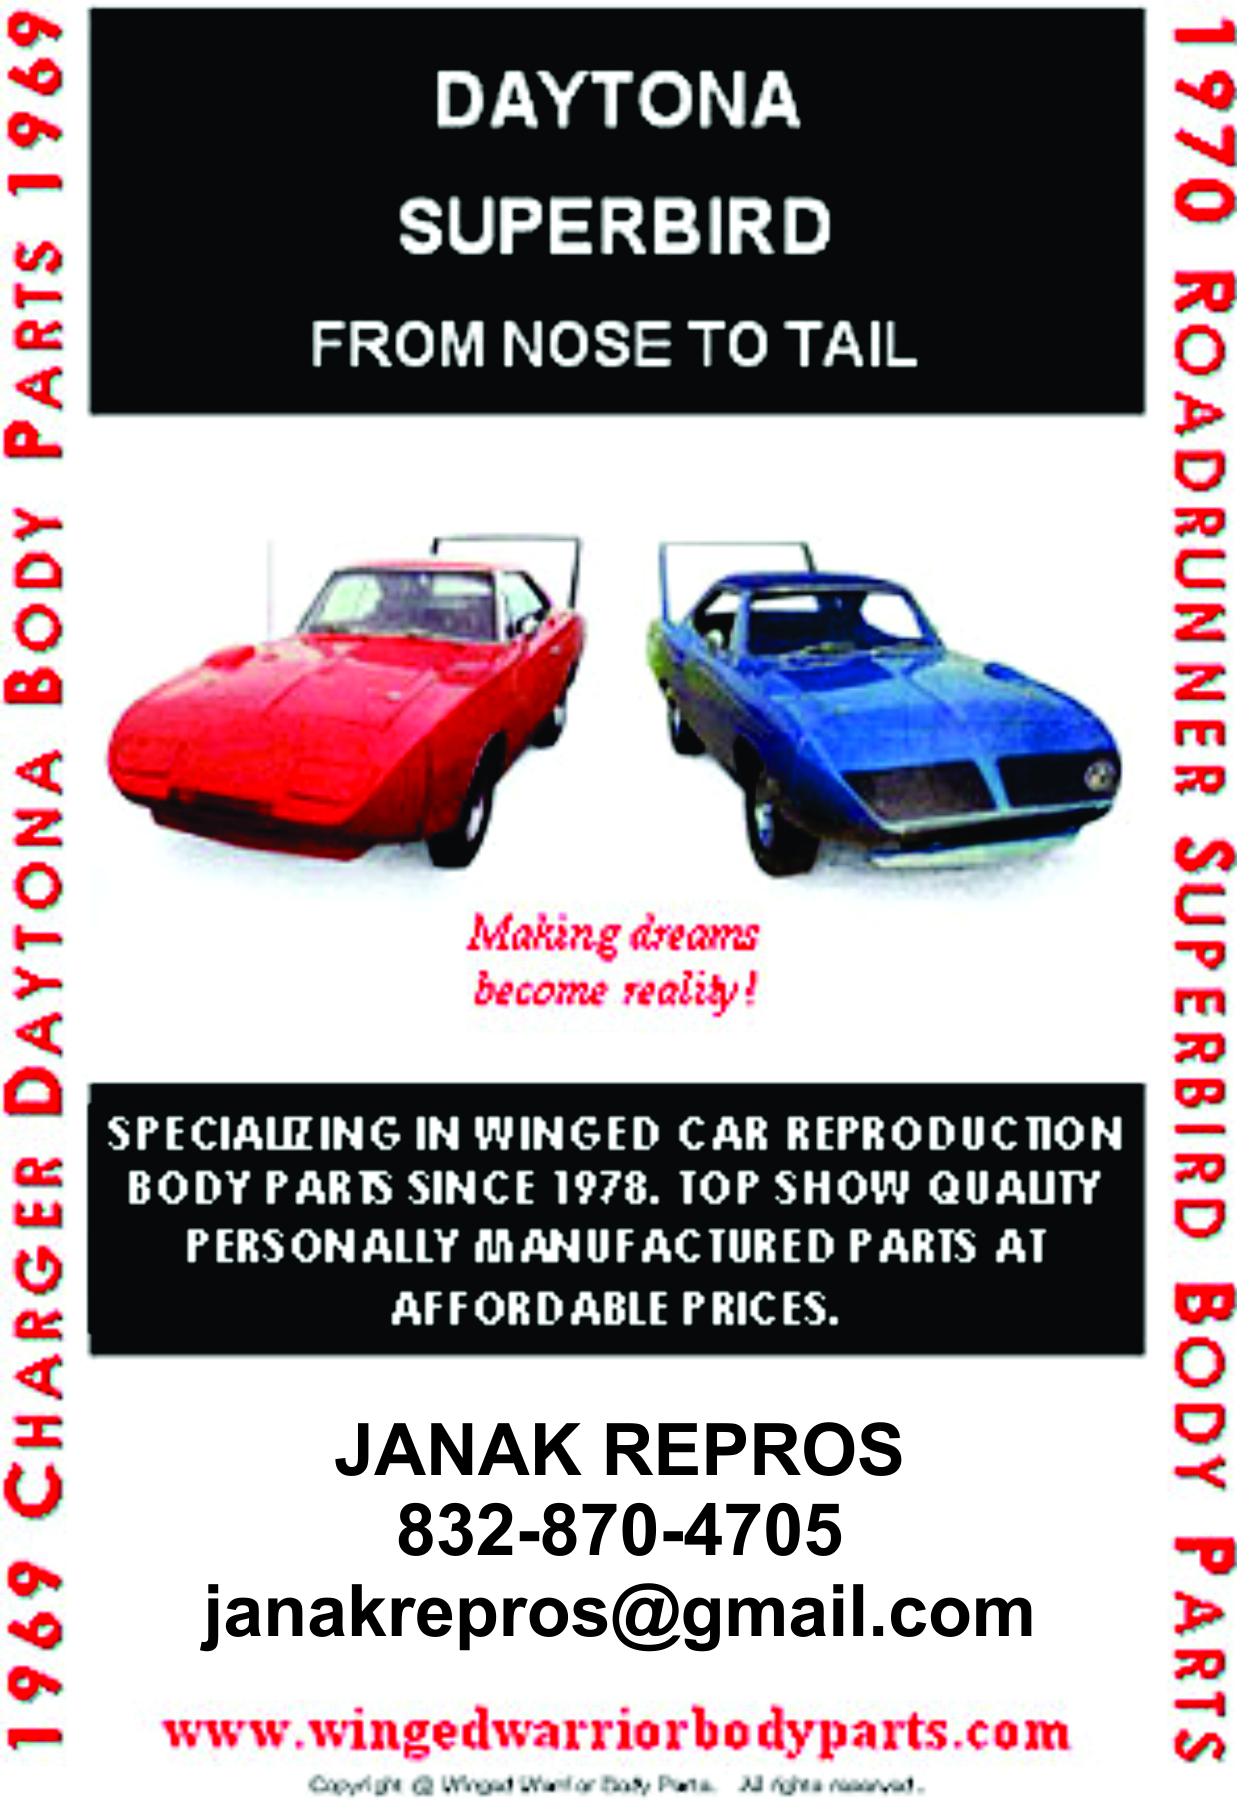 Custom Fabricated Wing Car Conversion Kit - Superbird and Daytona Body Parts by Janak Repros